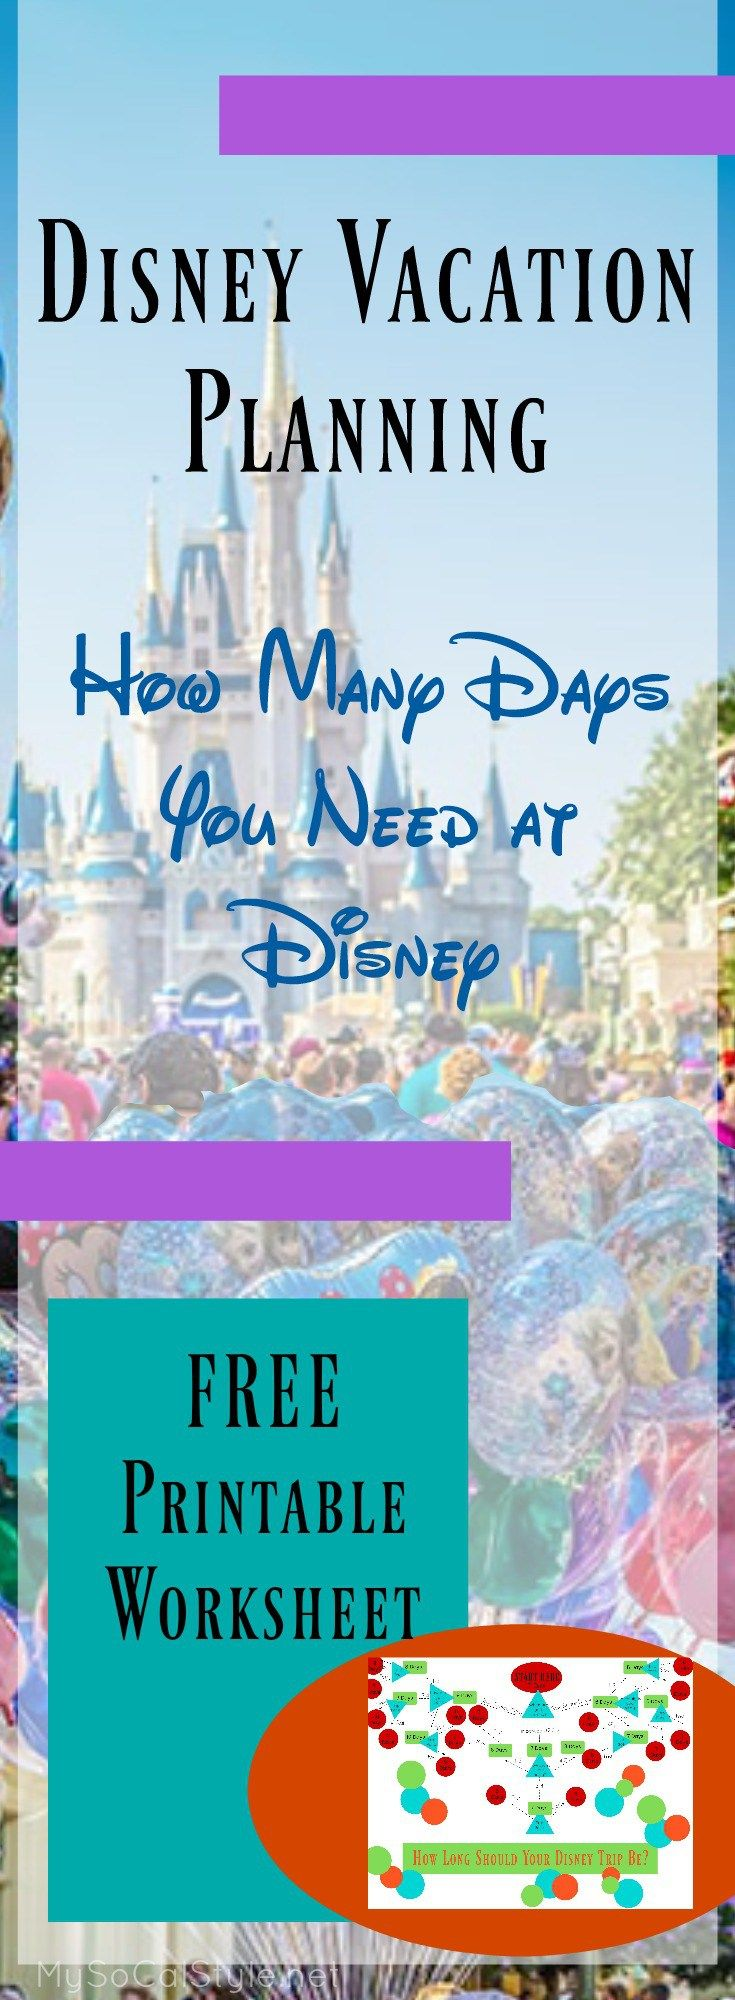 Disney World Planning Pt 2: How Long to Stay | The Pixie Dusted Planner